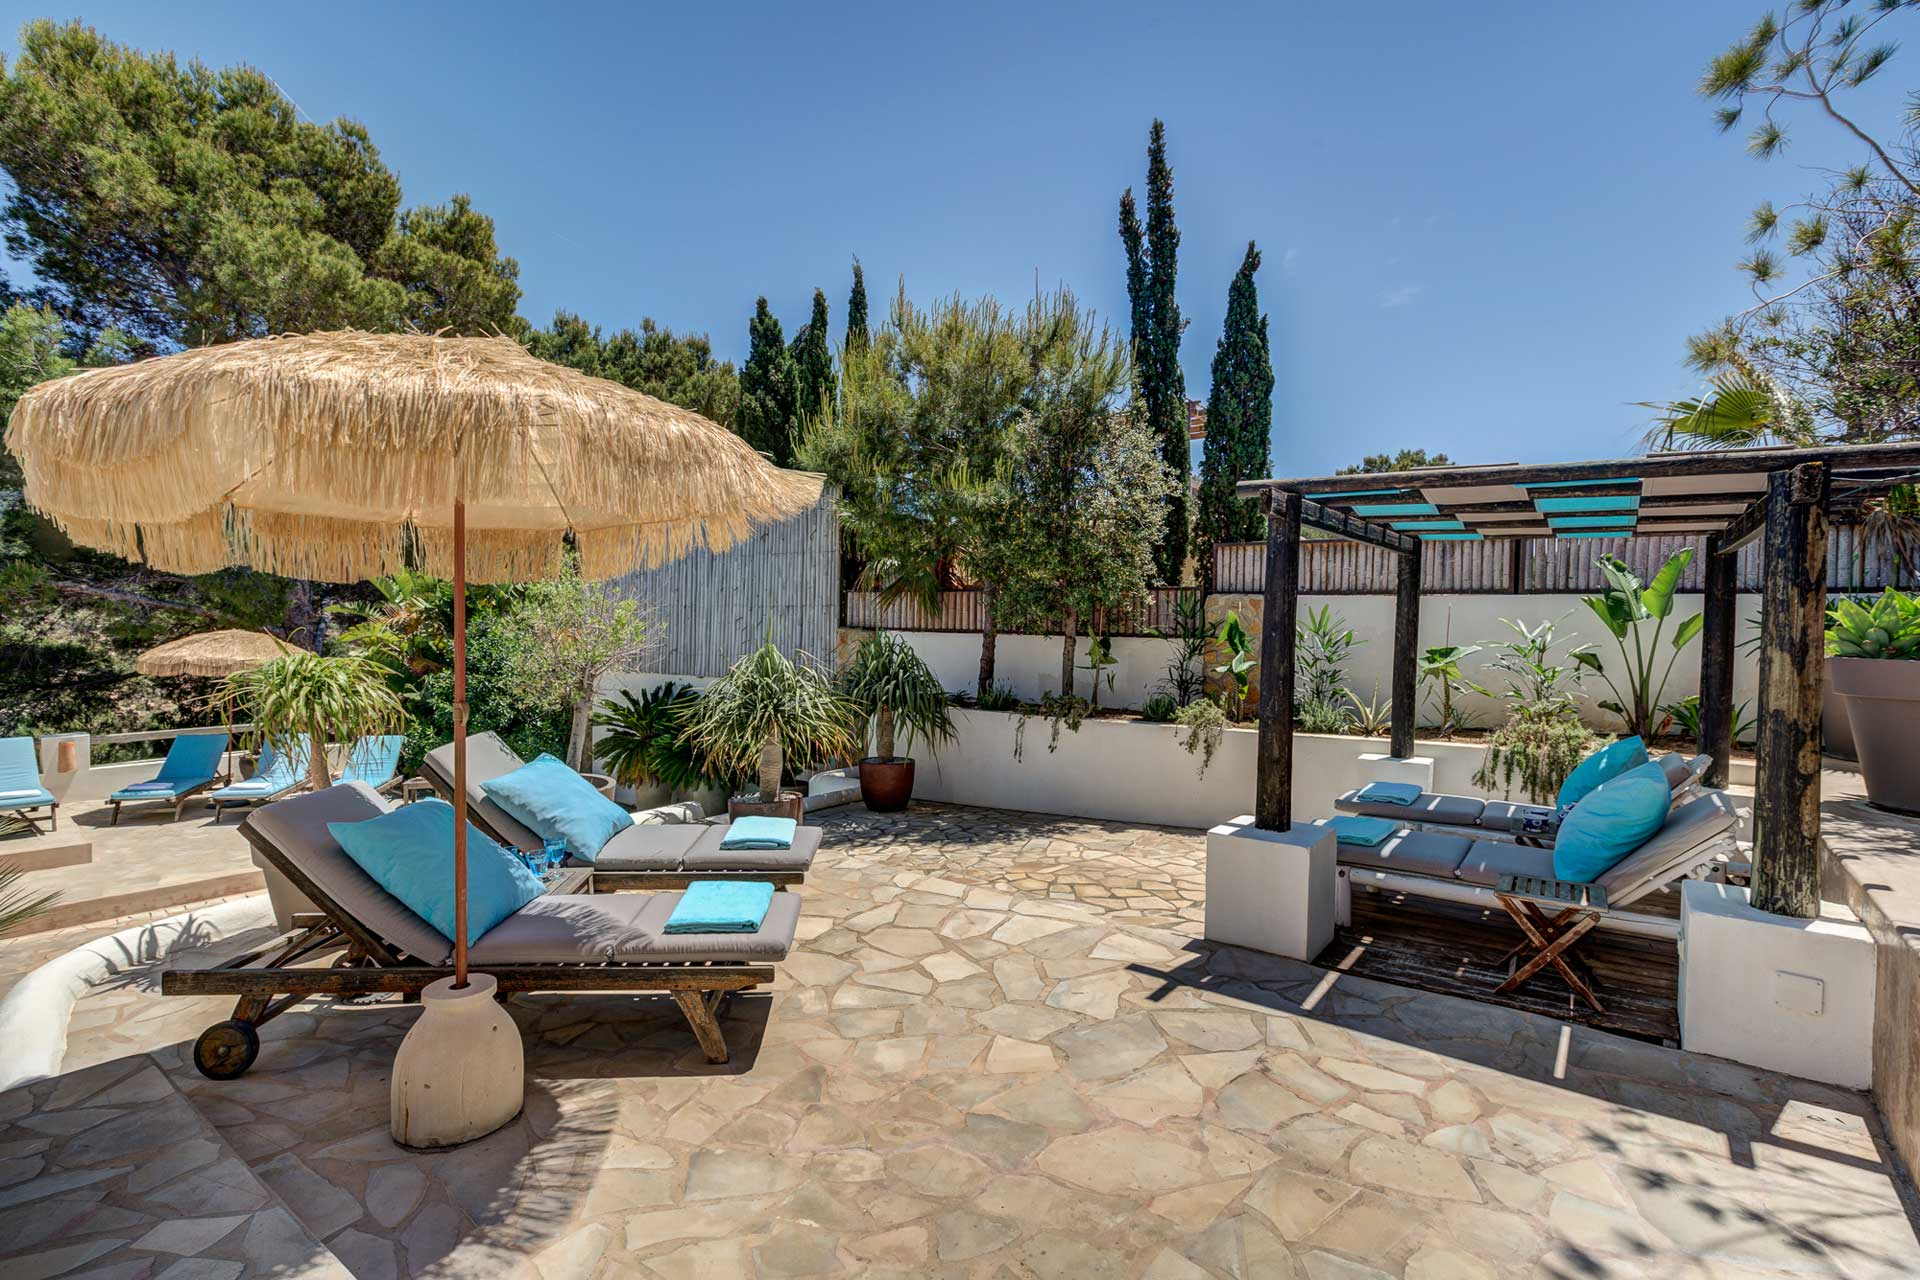 Villa Can Terra - Terrasse mit Chill-out Bereich